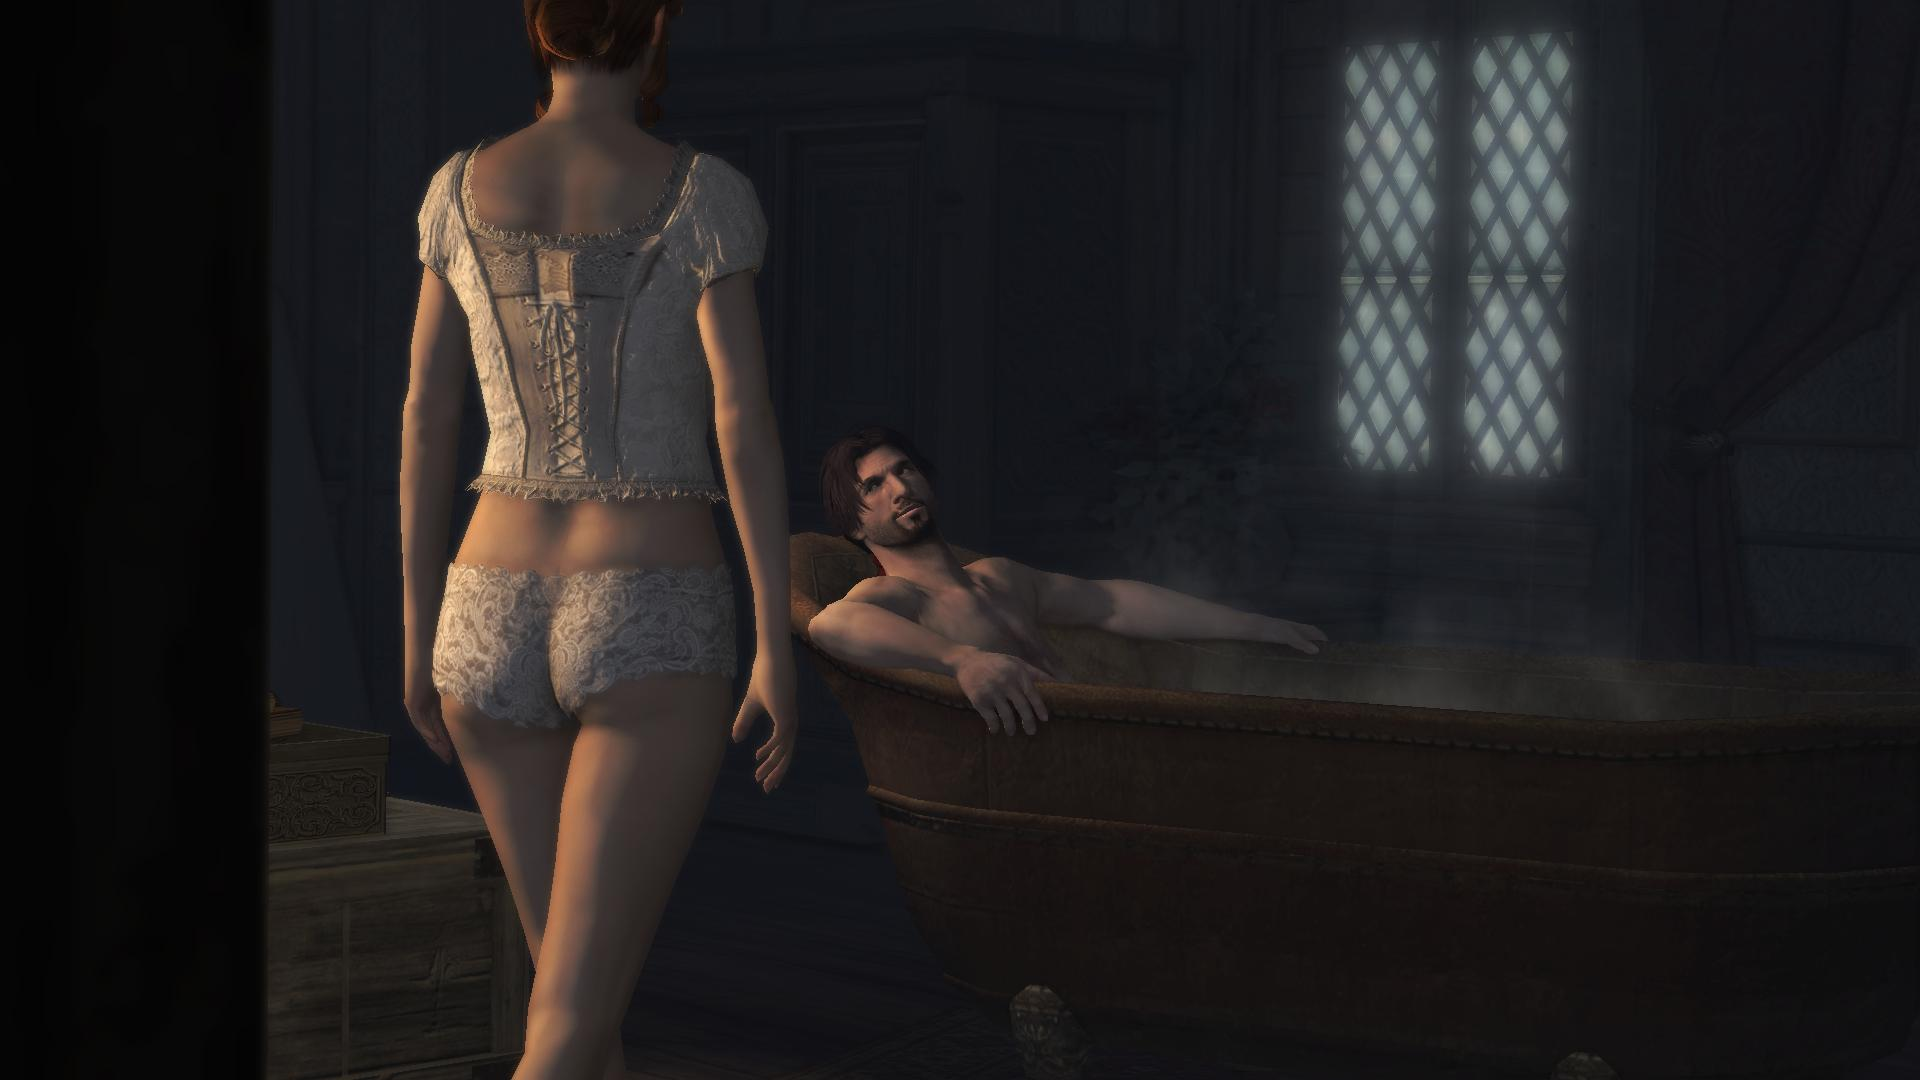 Assassins creed porn bilder hardcore video